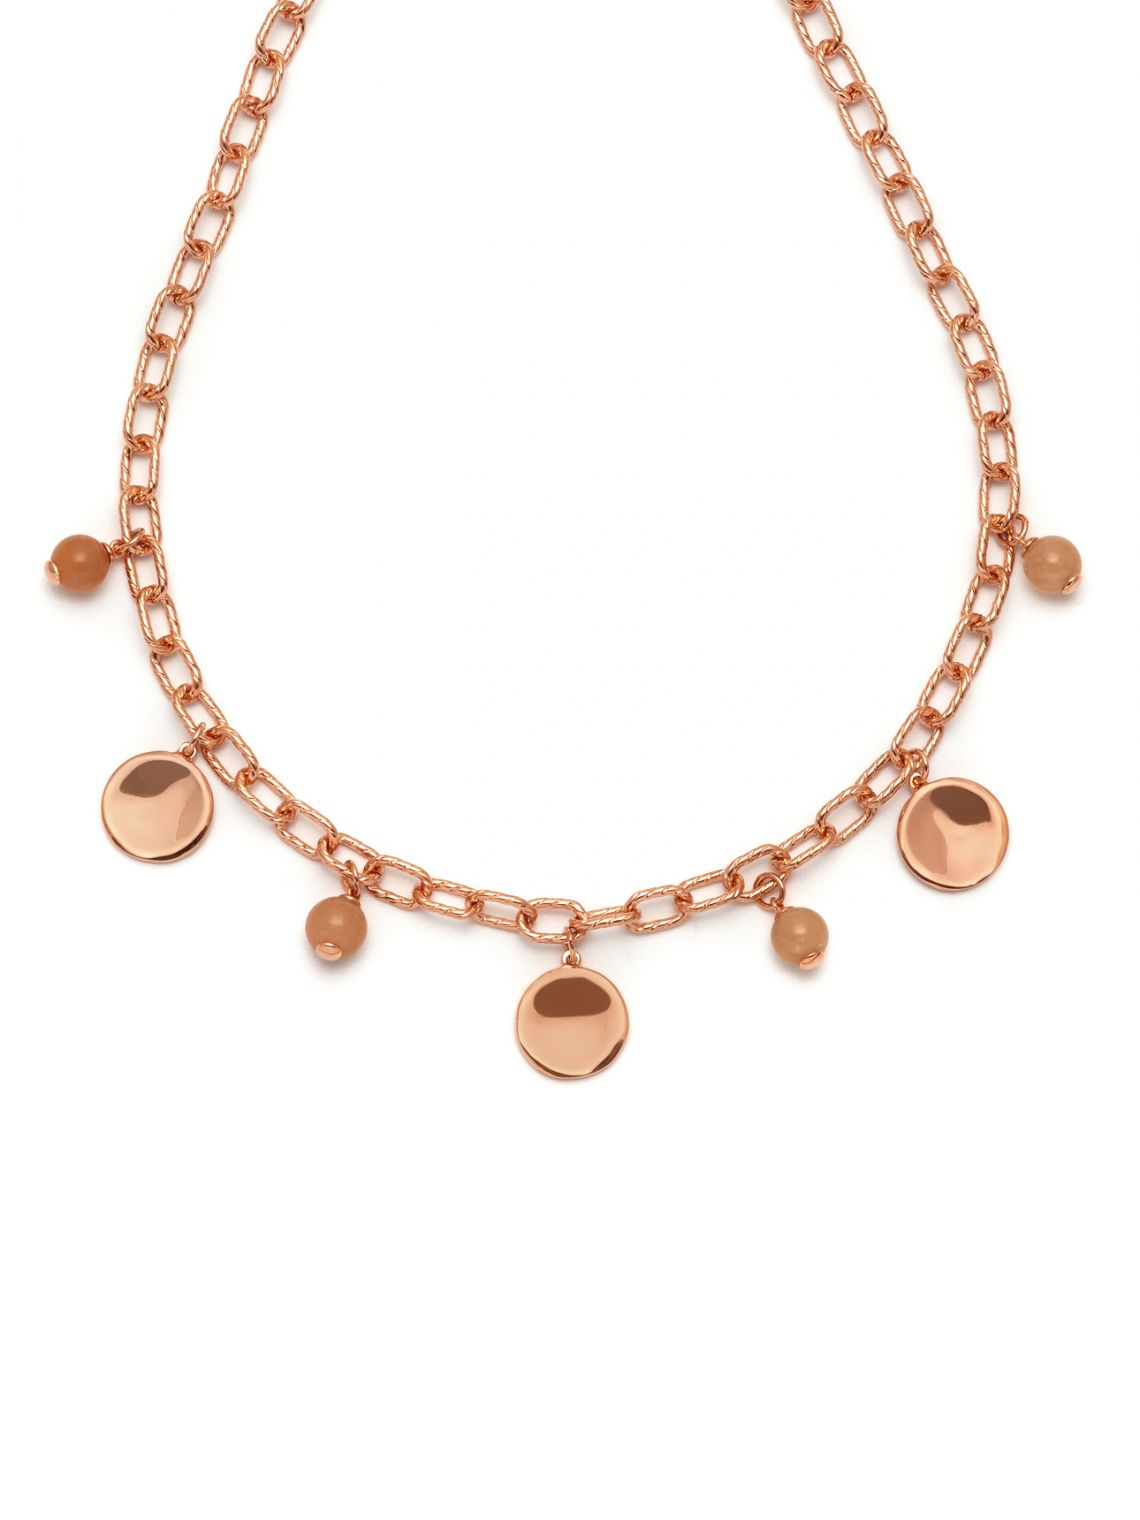 Baie Necklace